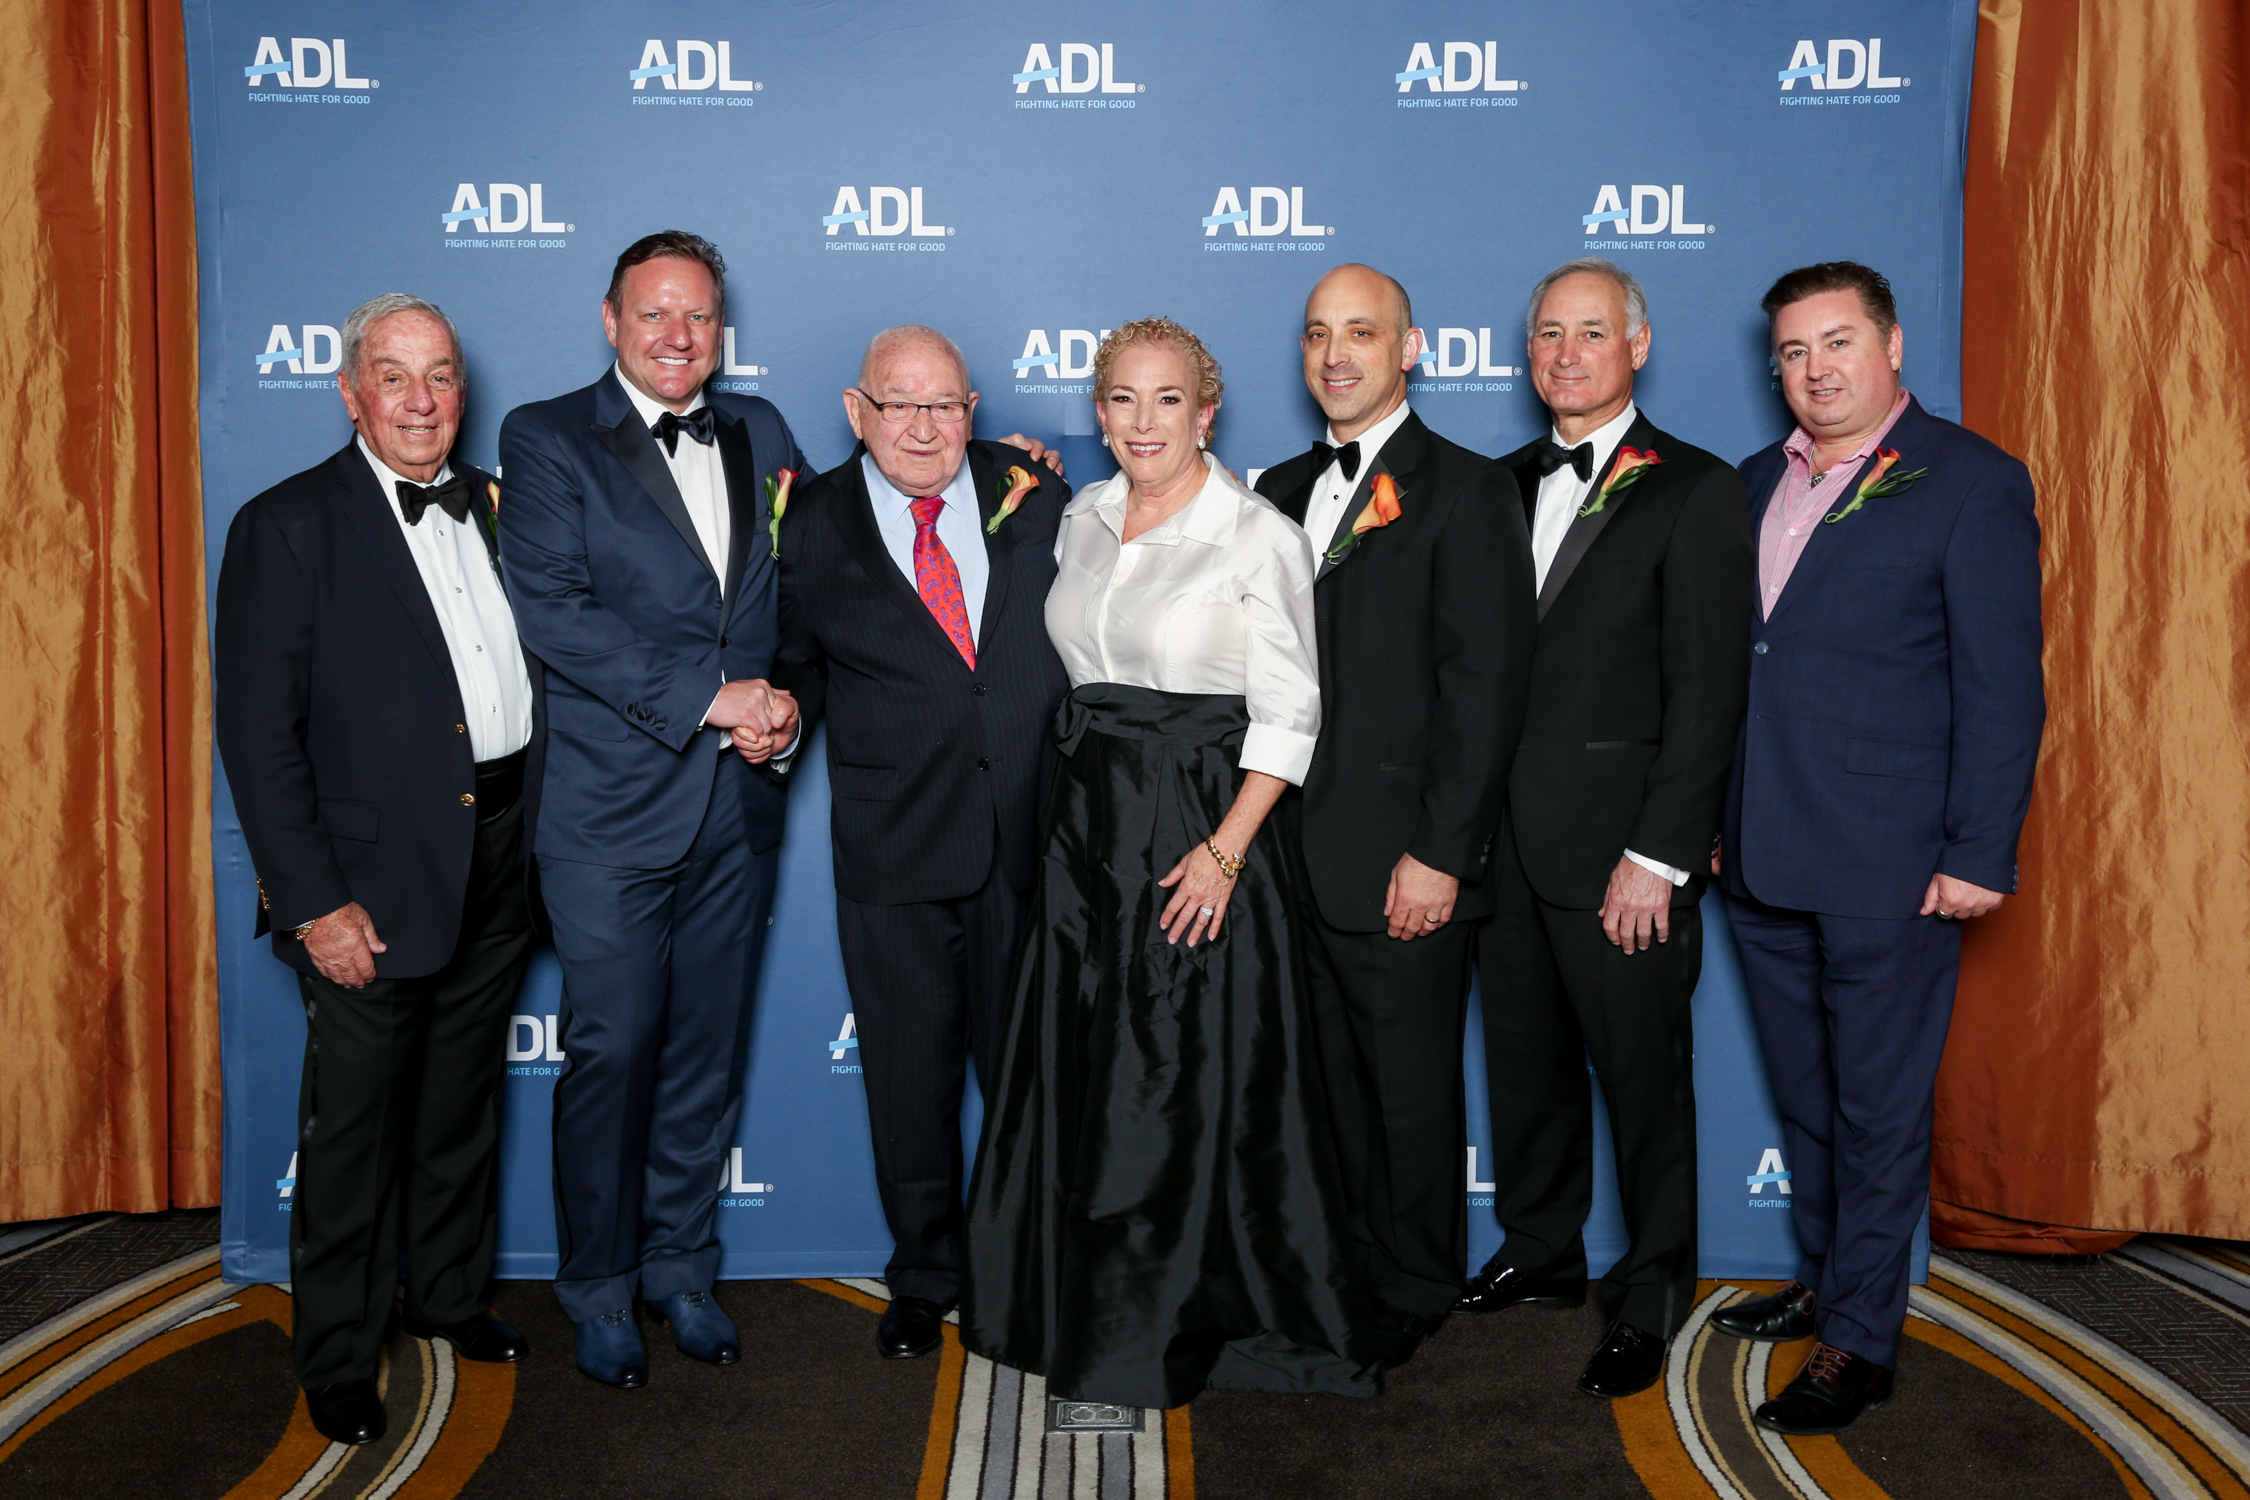 ADL Honors Three Home Furnishings Industry Leaders ... on national home services, national home furnishings, national baseball, national transportation, national fish, national home design, national weather, national home health,